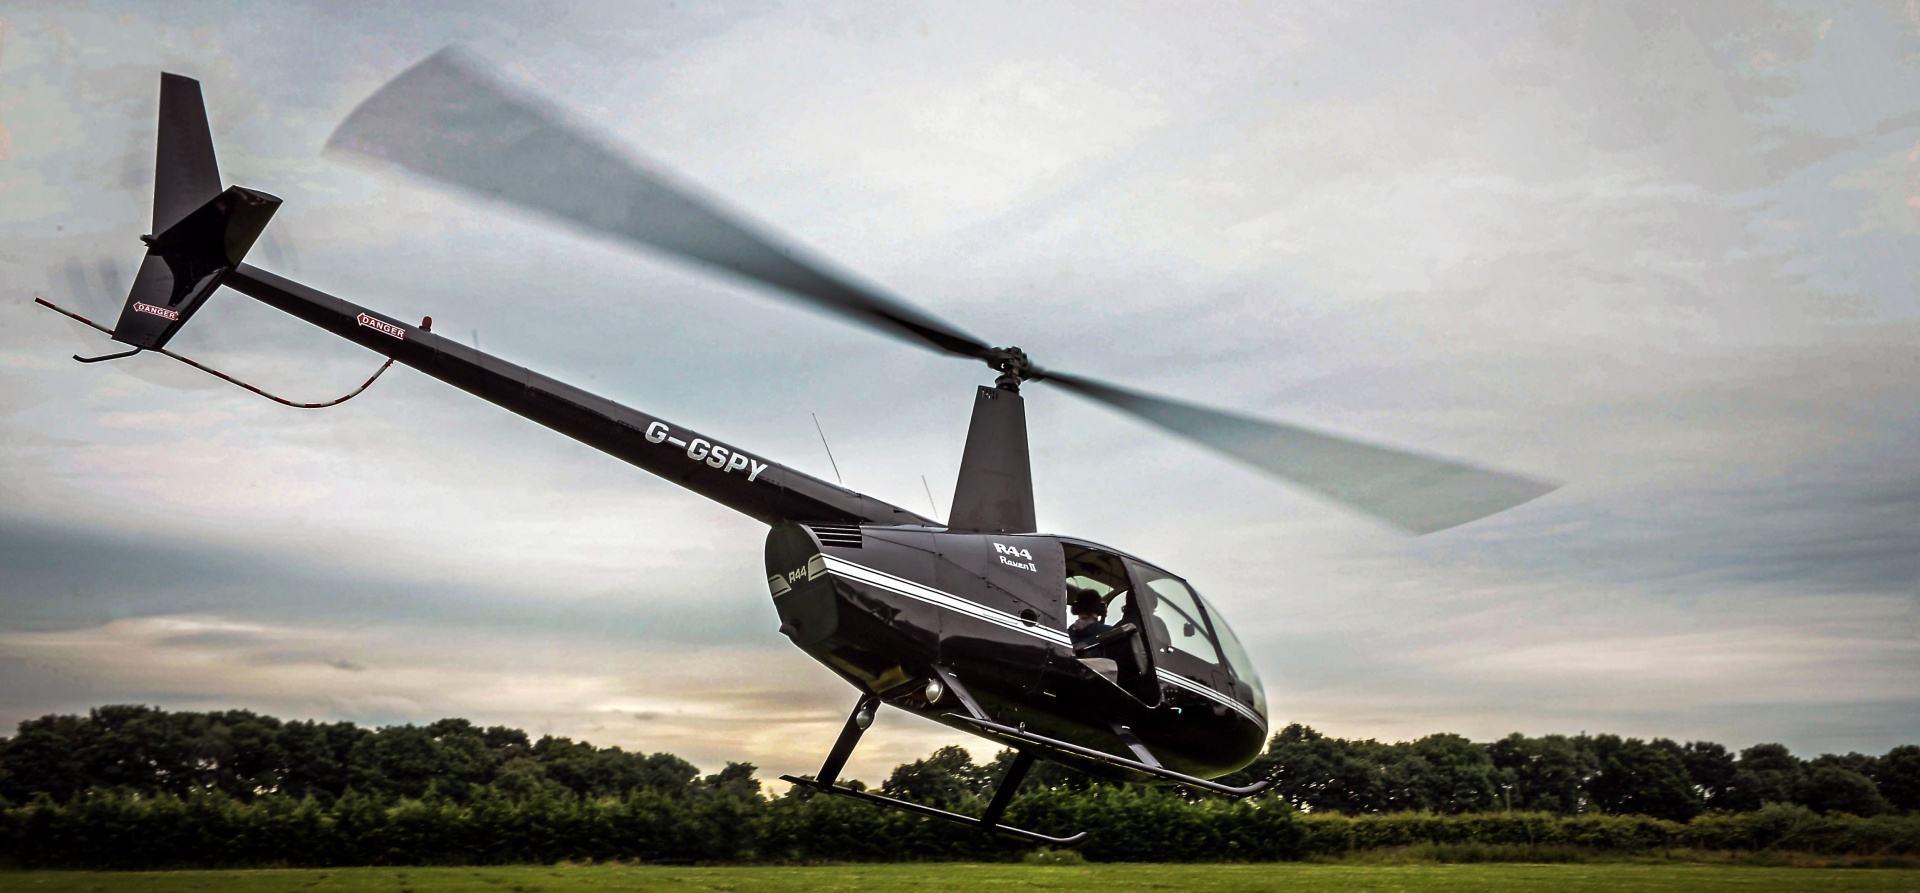 One Hour R44 Helicopter Trial Flight in Yorkshire-1